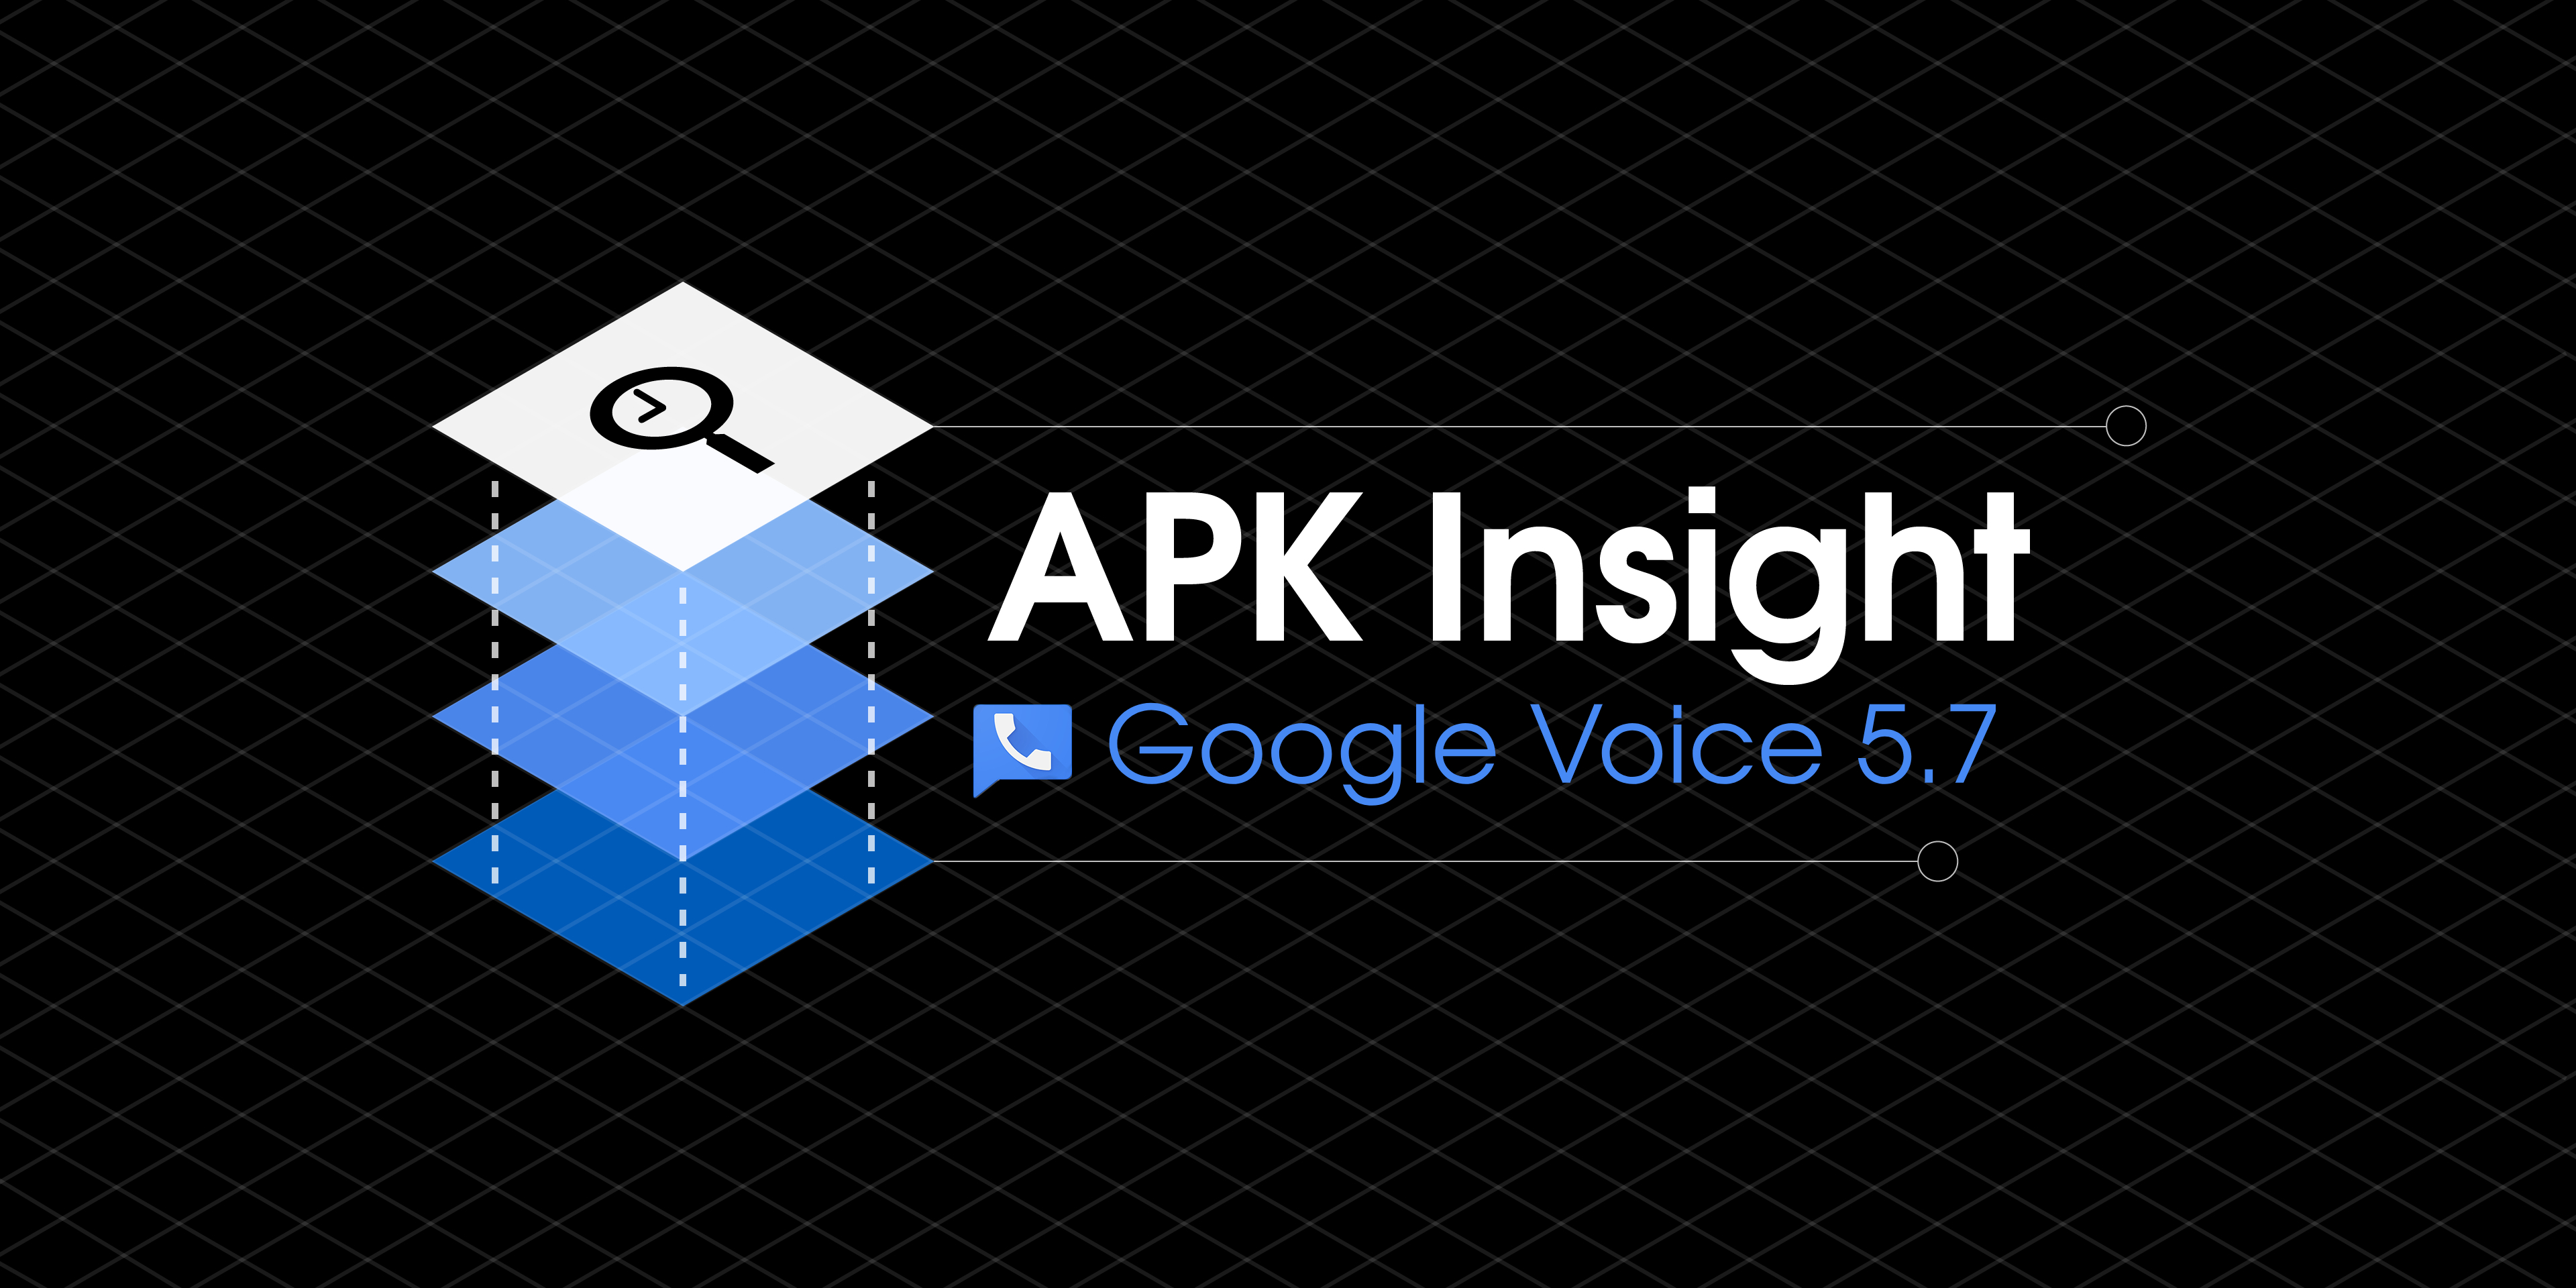 Google Voice 5.7 for Android finally preps in-app VoIP ...